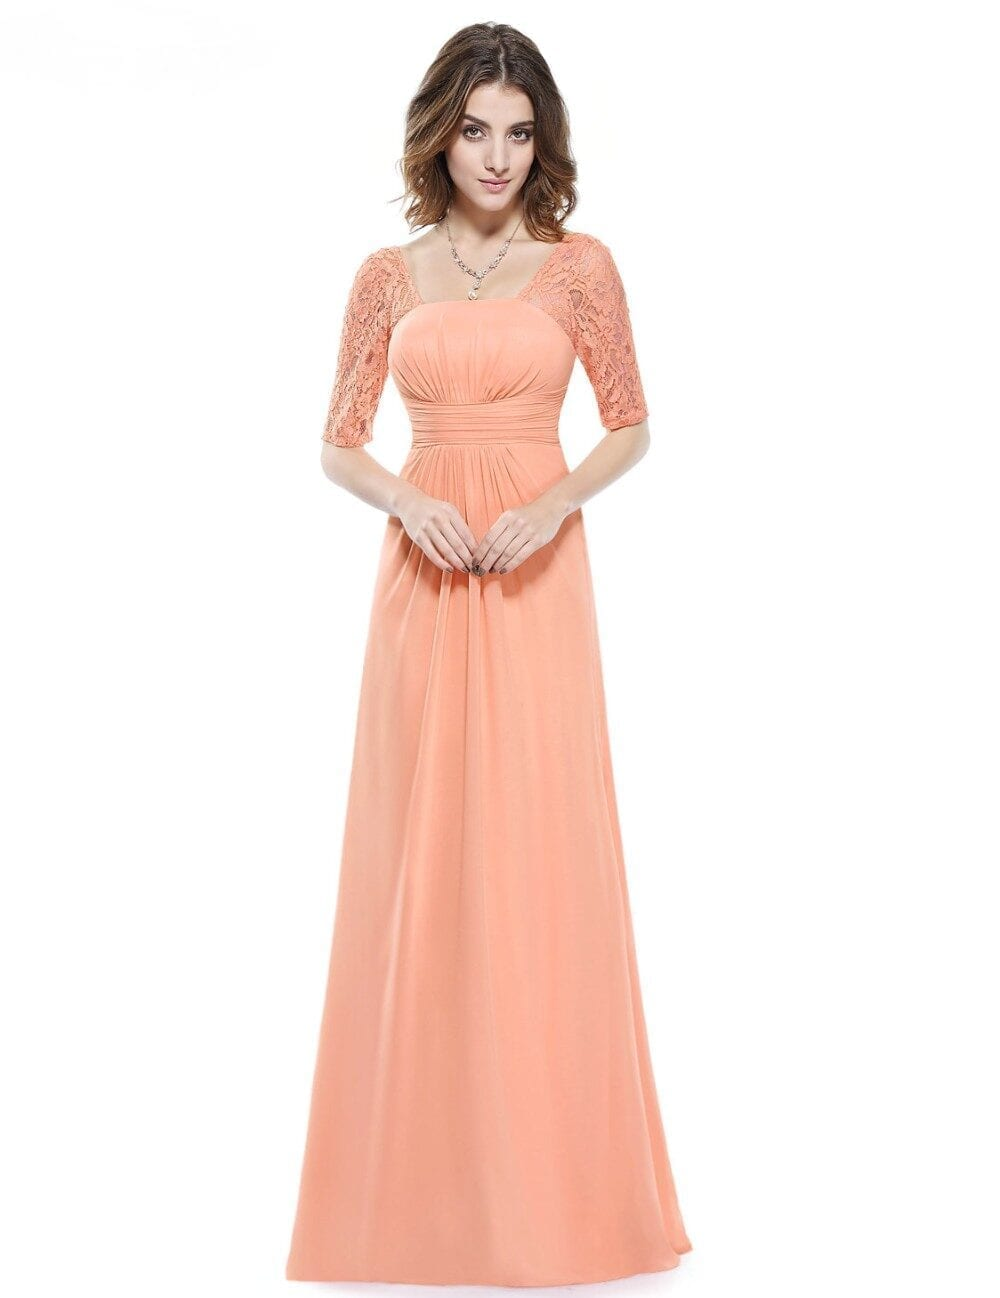 Beauty Lace Square Neckline Long Prom Evening Dress